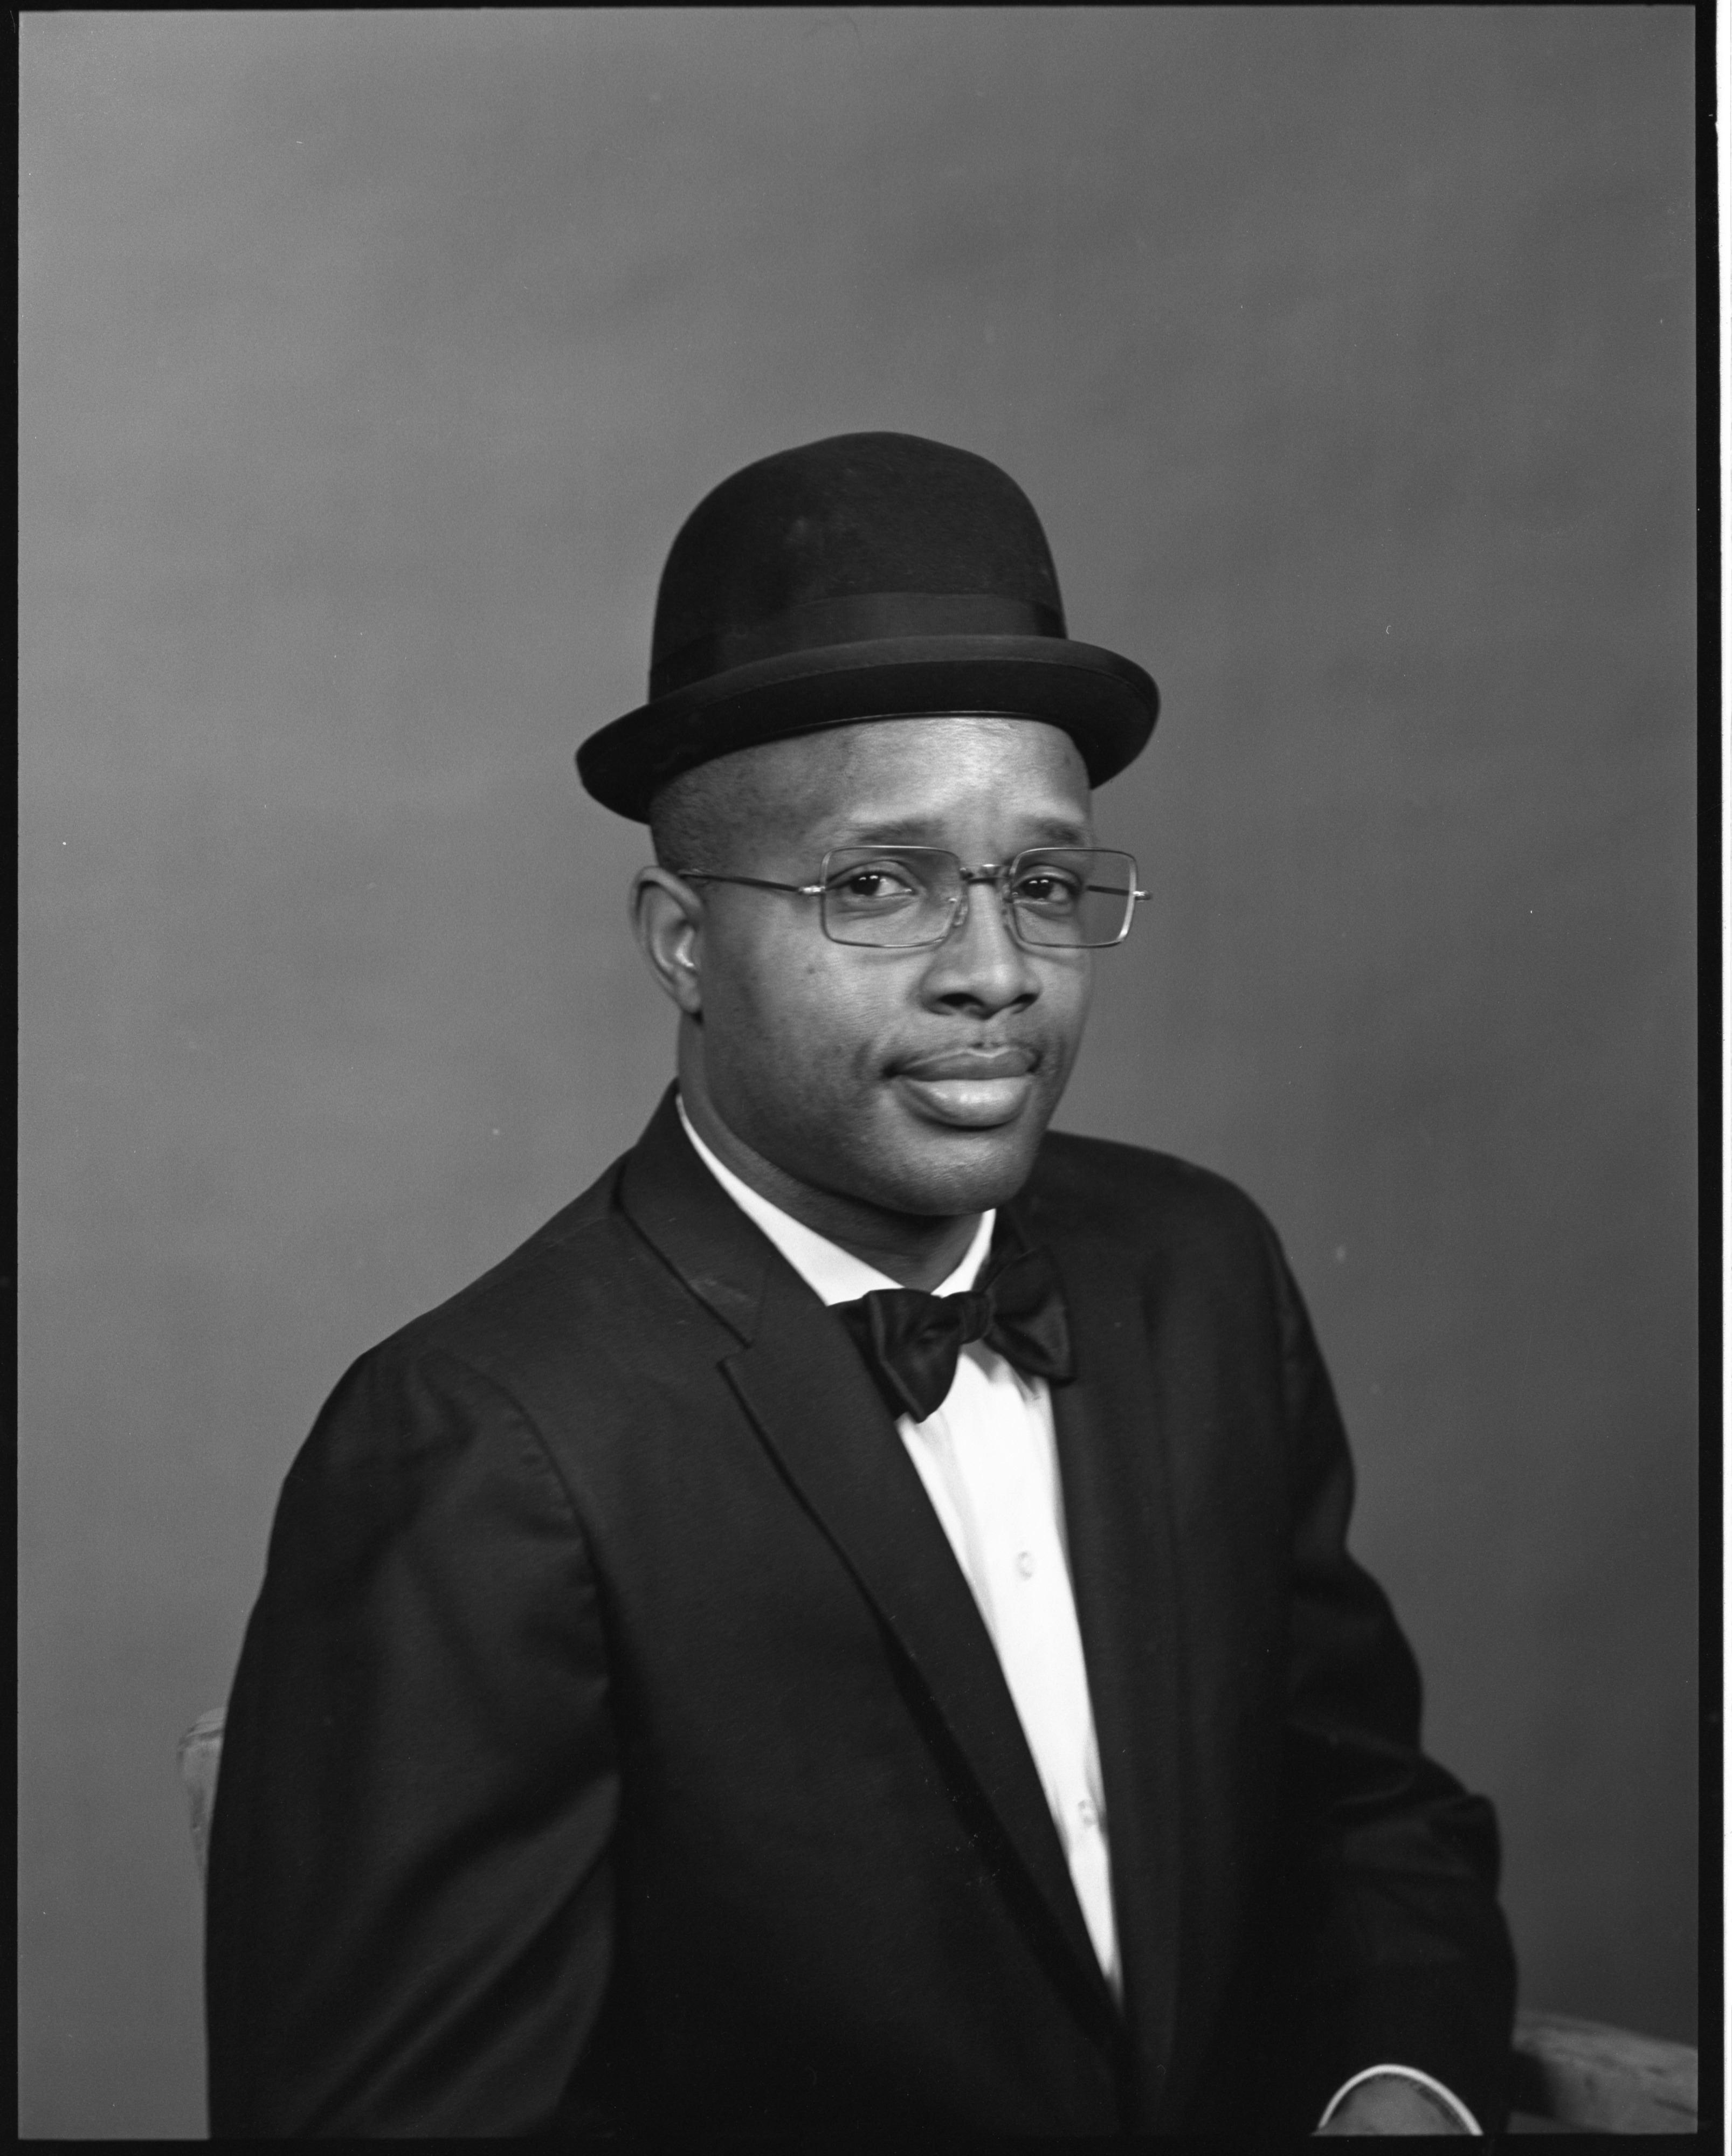 Horace C. Williams - Newly Installed Worshipful Master Of St. Mary's Lodge No. 4, January 1972 image